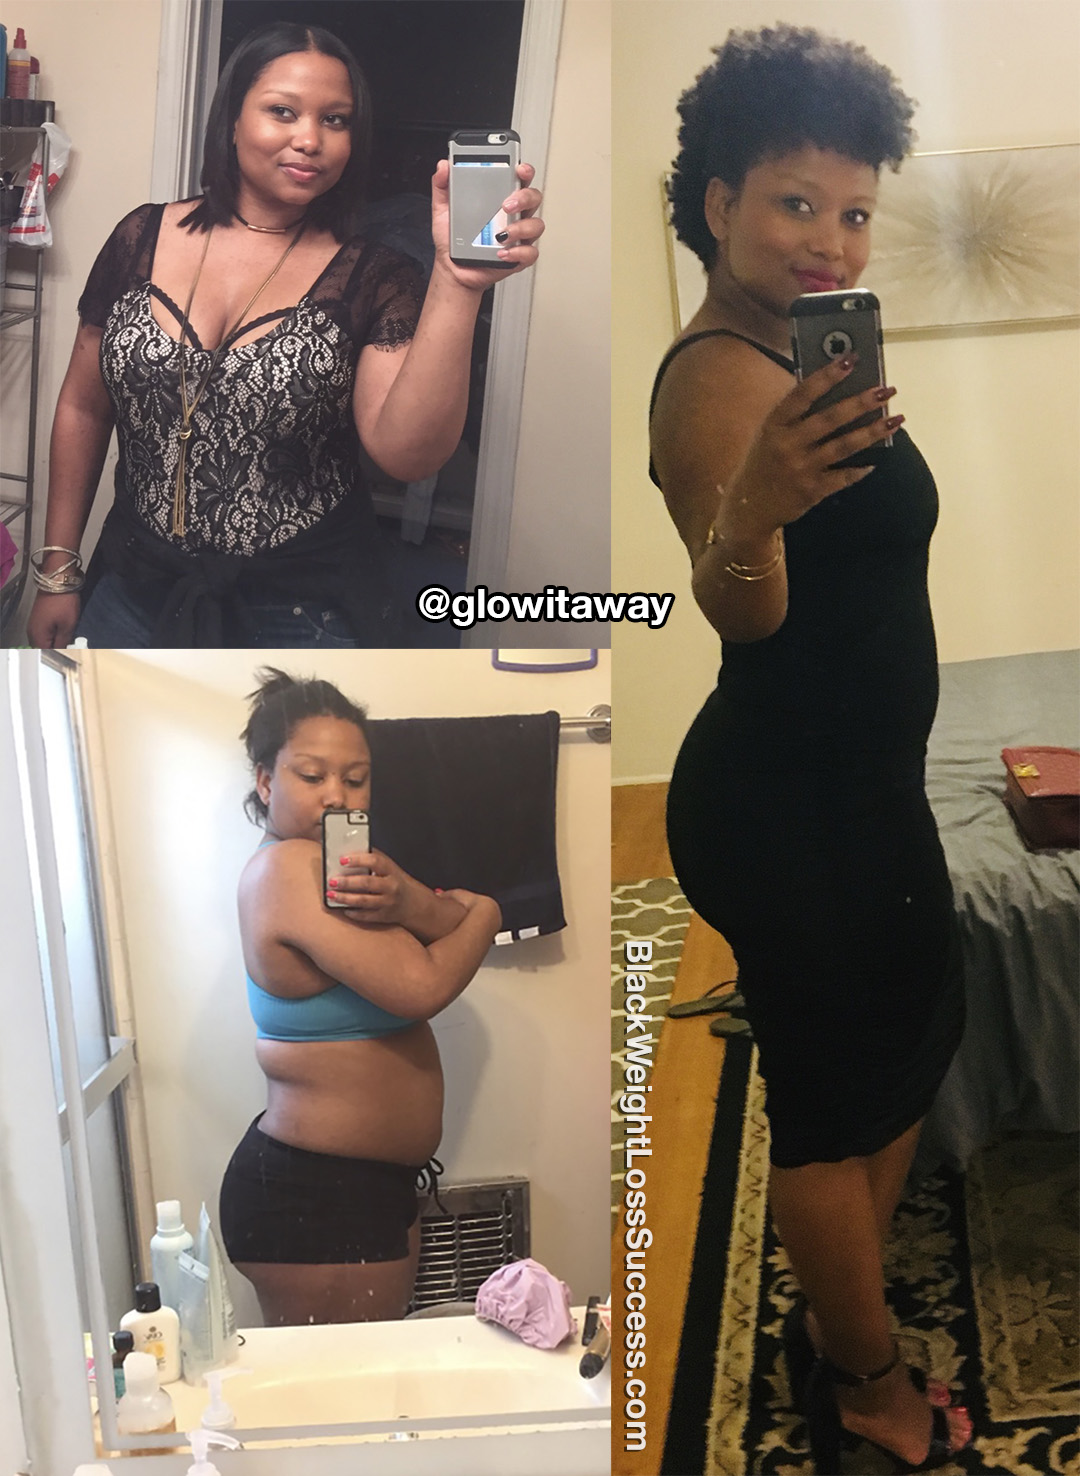 Alicia before and after